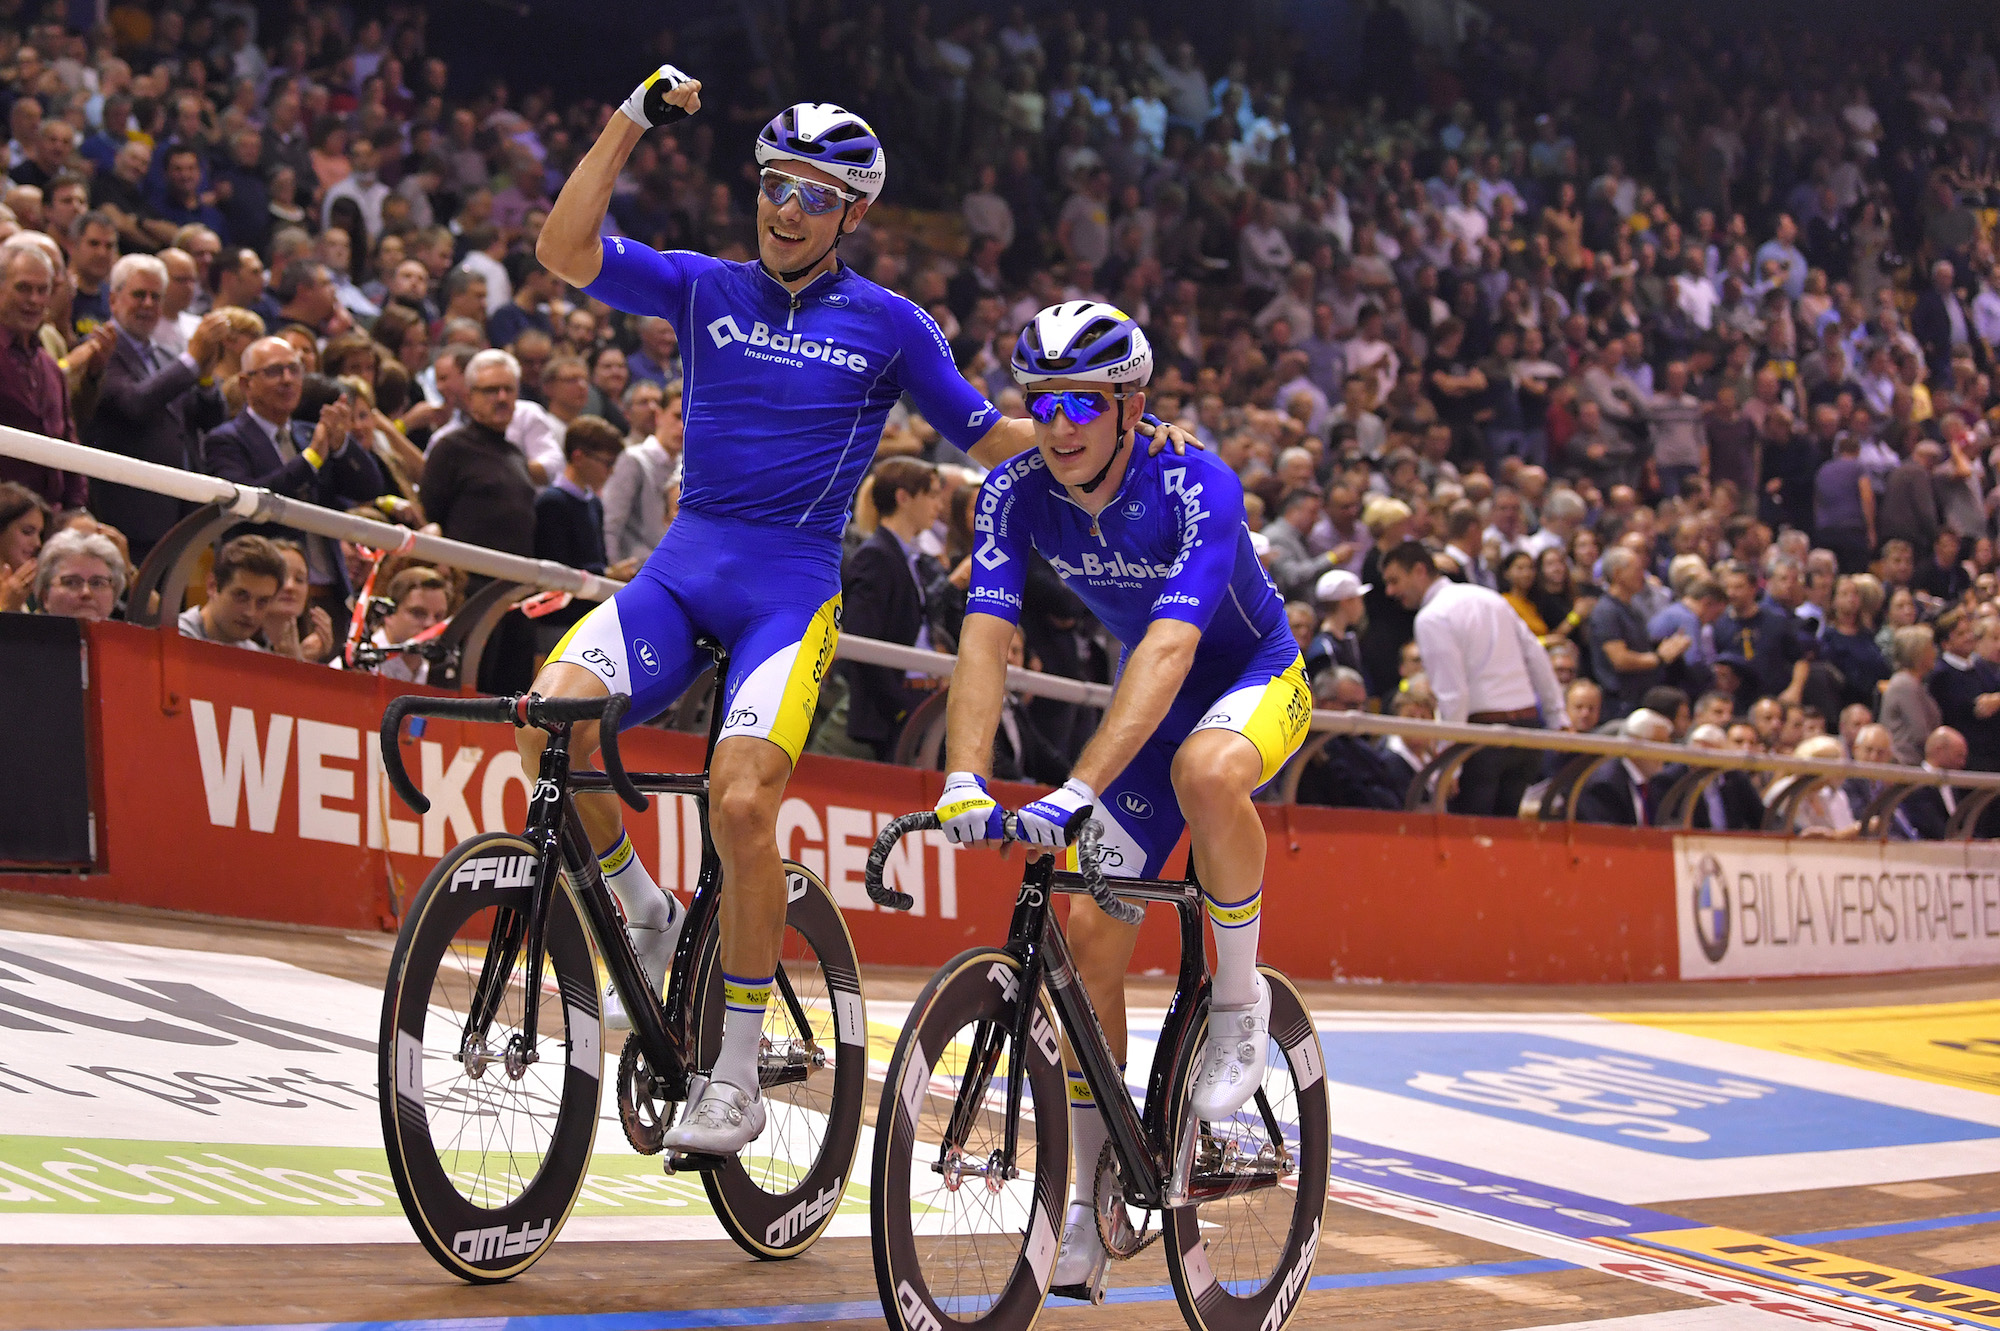 Kenny De Ketele and Robbe Ghys take overall victory at thrilling Ghent Six Day 2019